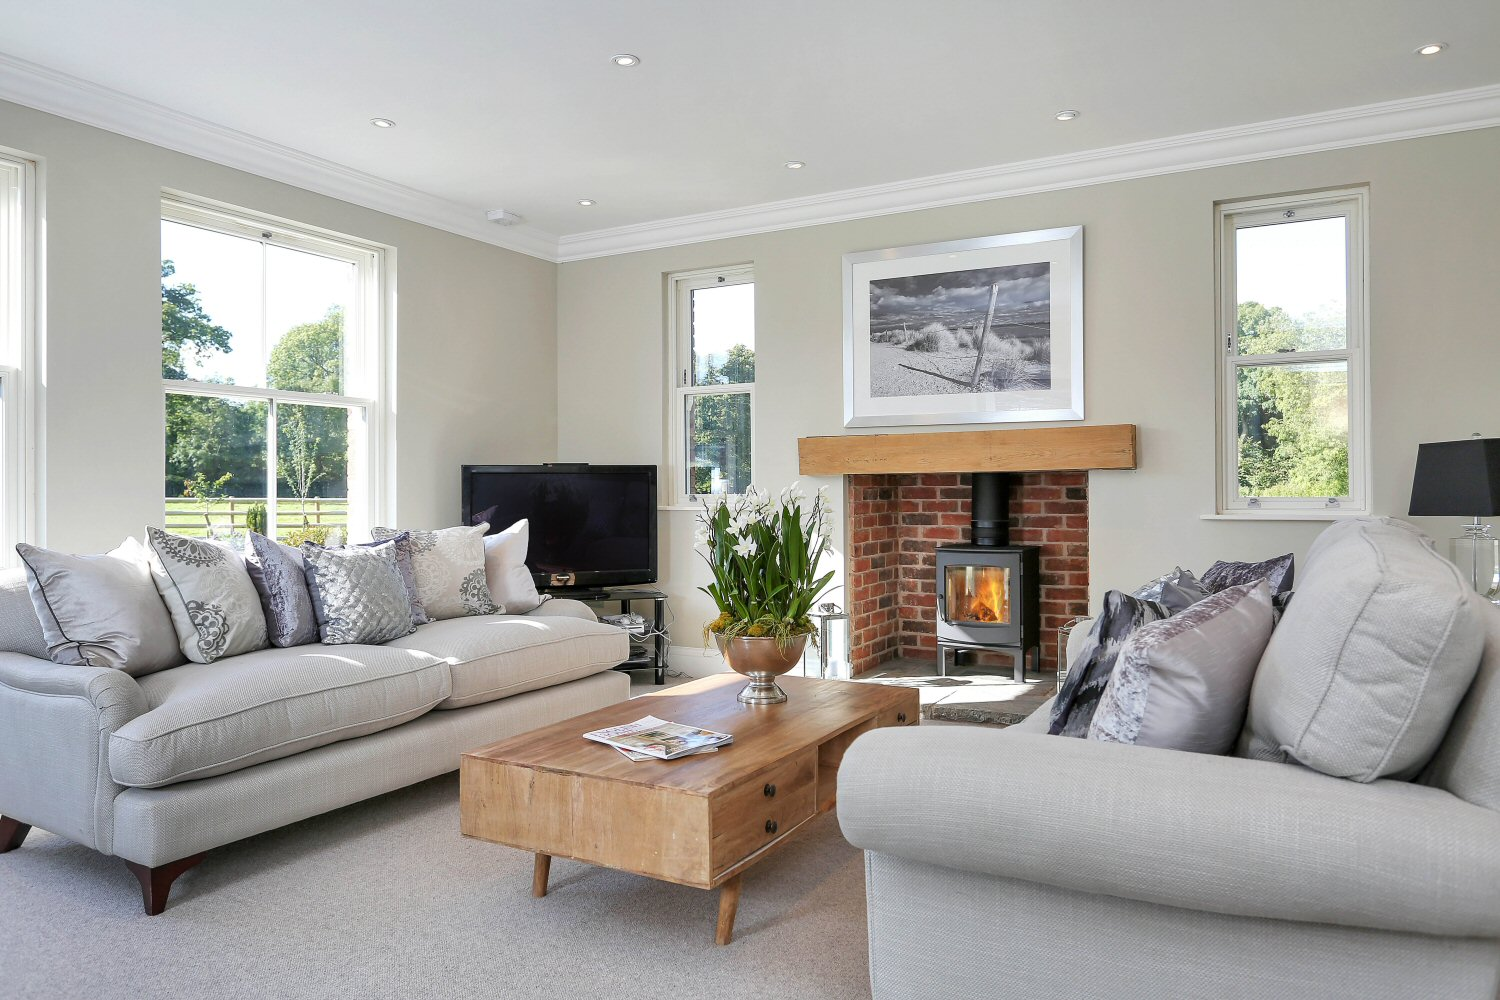 Top tips to decorate a new home